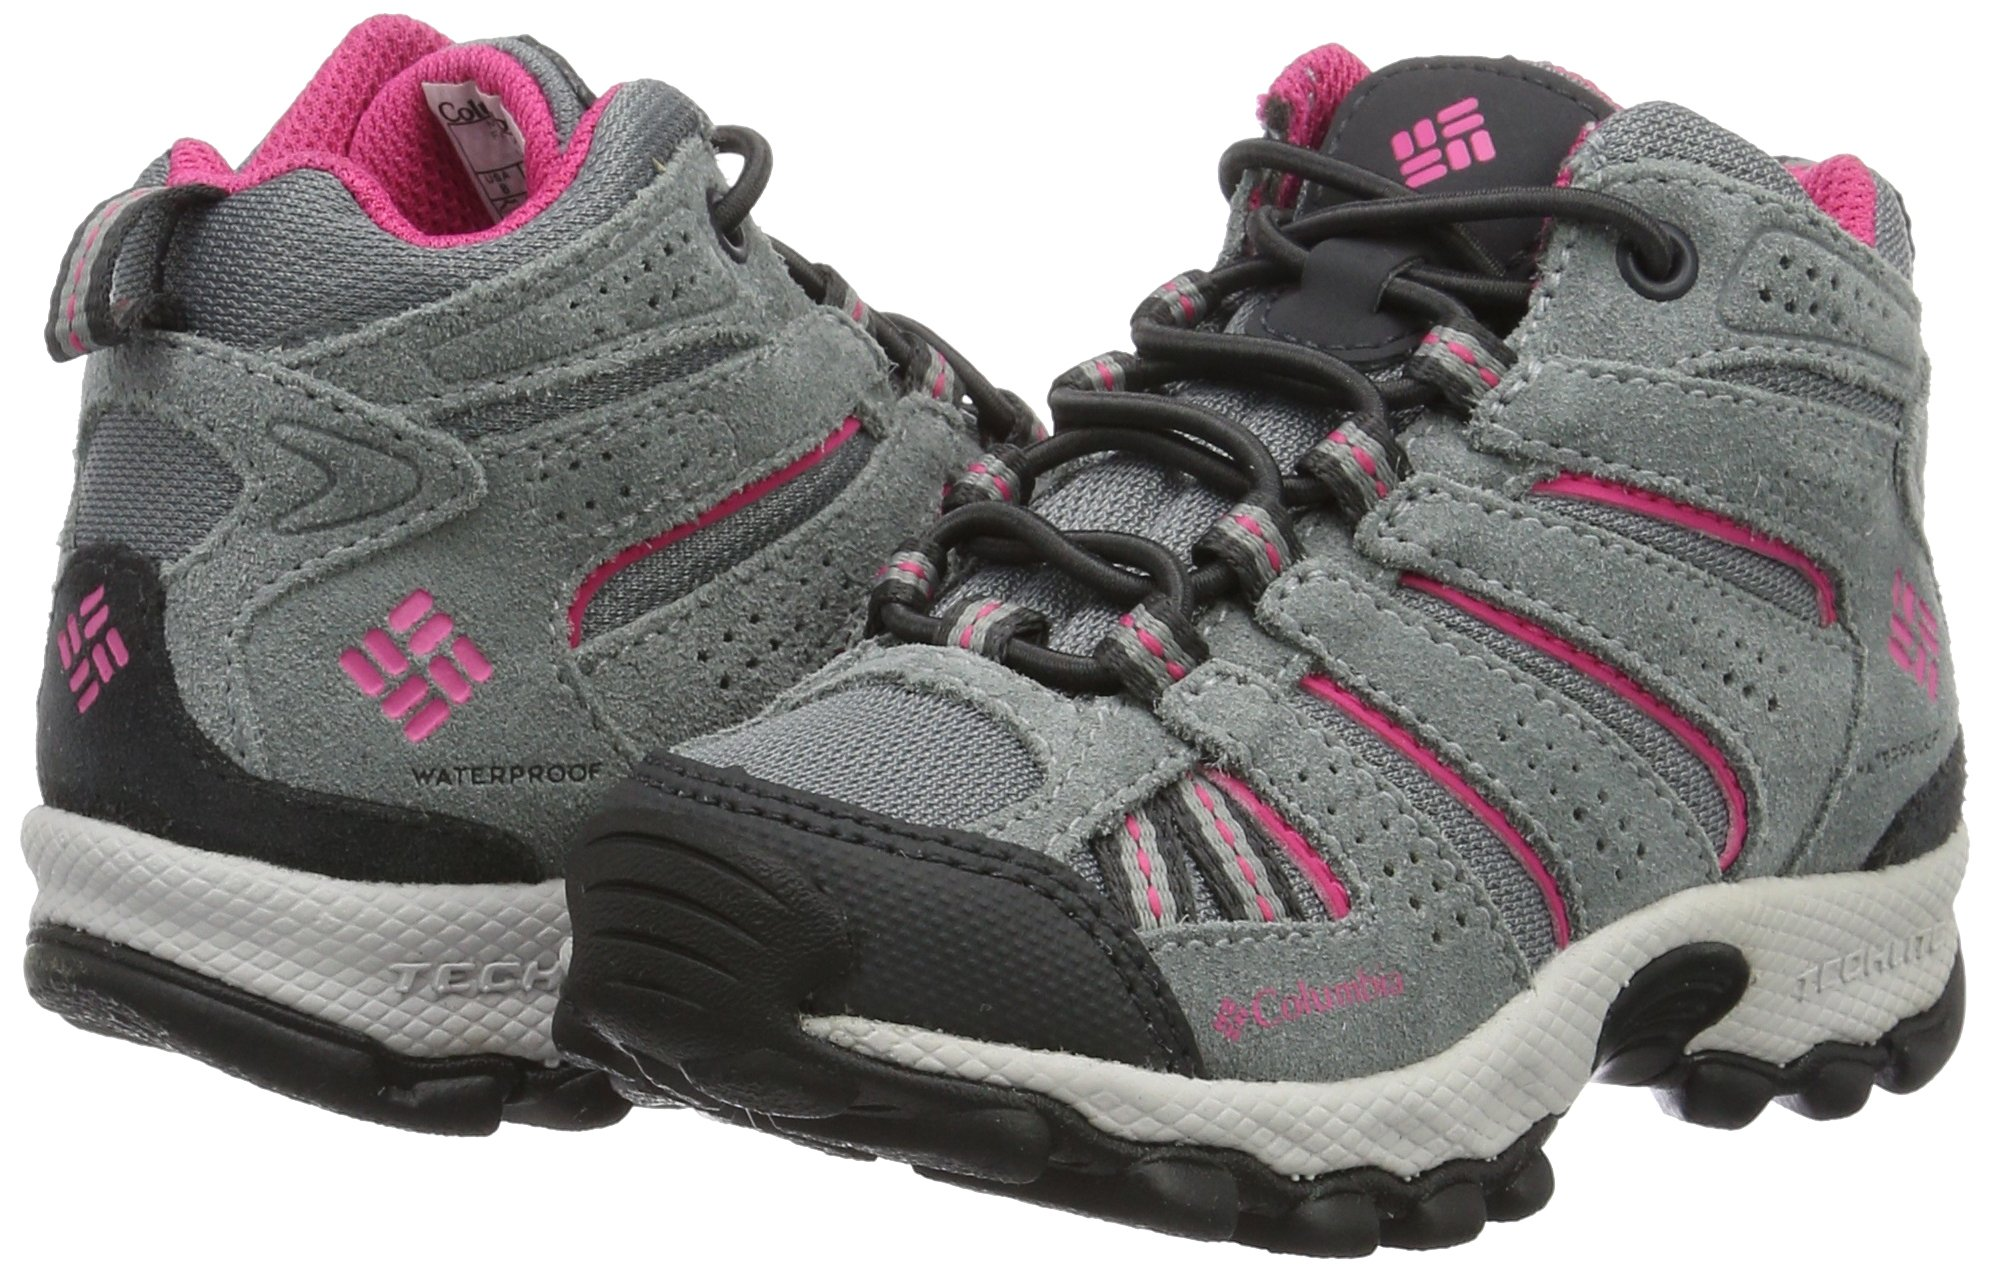 Columbia Childrens North Plains MID Waterproof Hiking Boot Grey Ash/Ultra Pink 11 M US Little Kid by Columbia (Image #5)